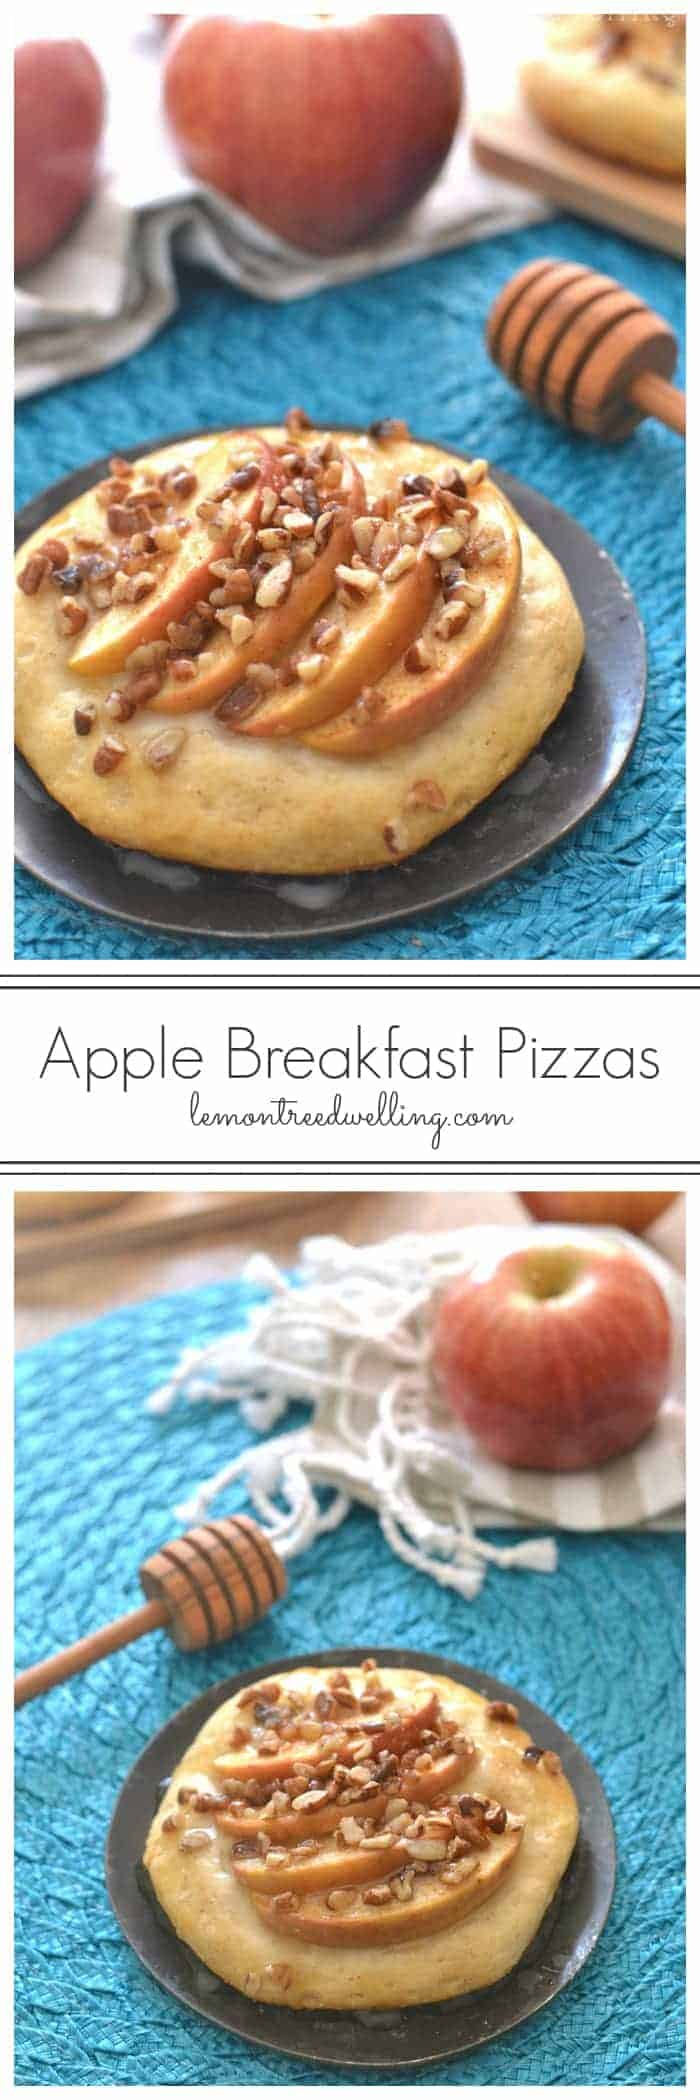 Easy Apple Breakfast Pizzas, vitafusion™ ImmuneWell, and our family's path to better health! #spon #SK